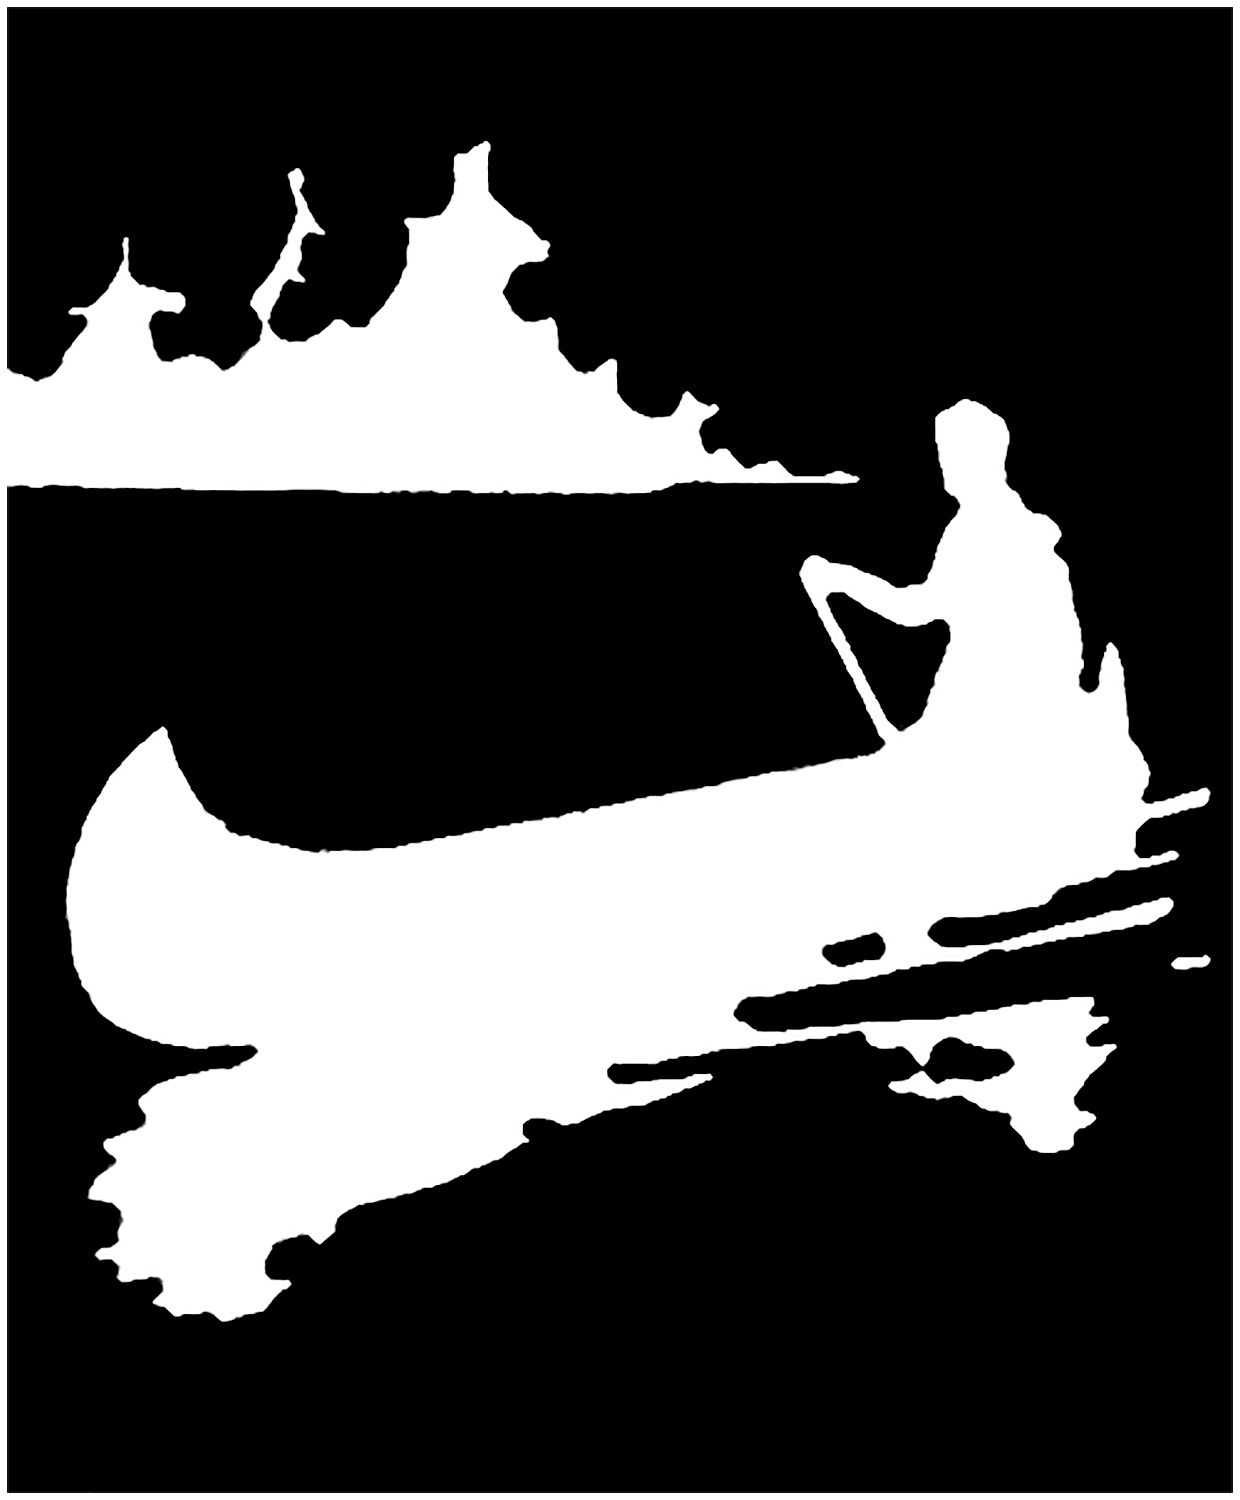 Canoe clipart silhouette. Vintage image images graphics